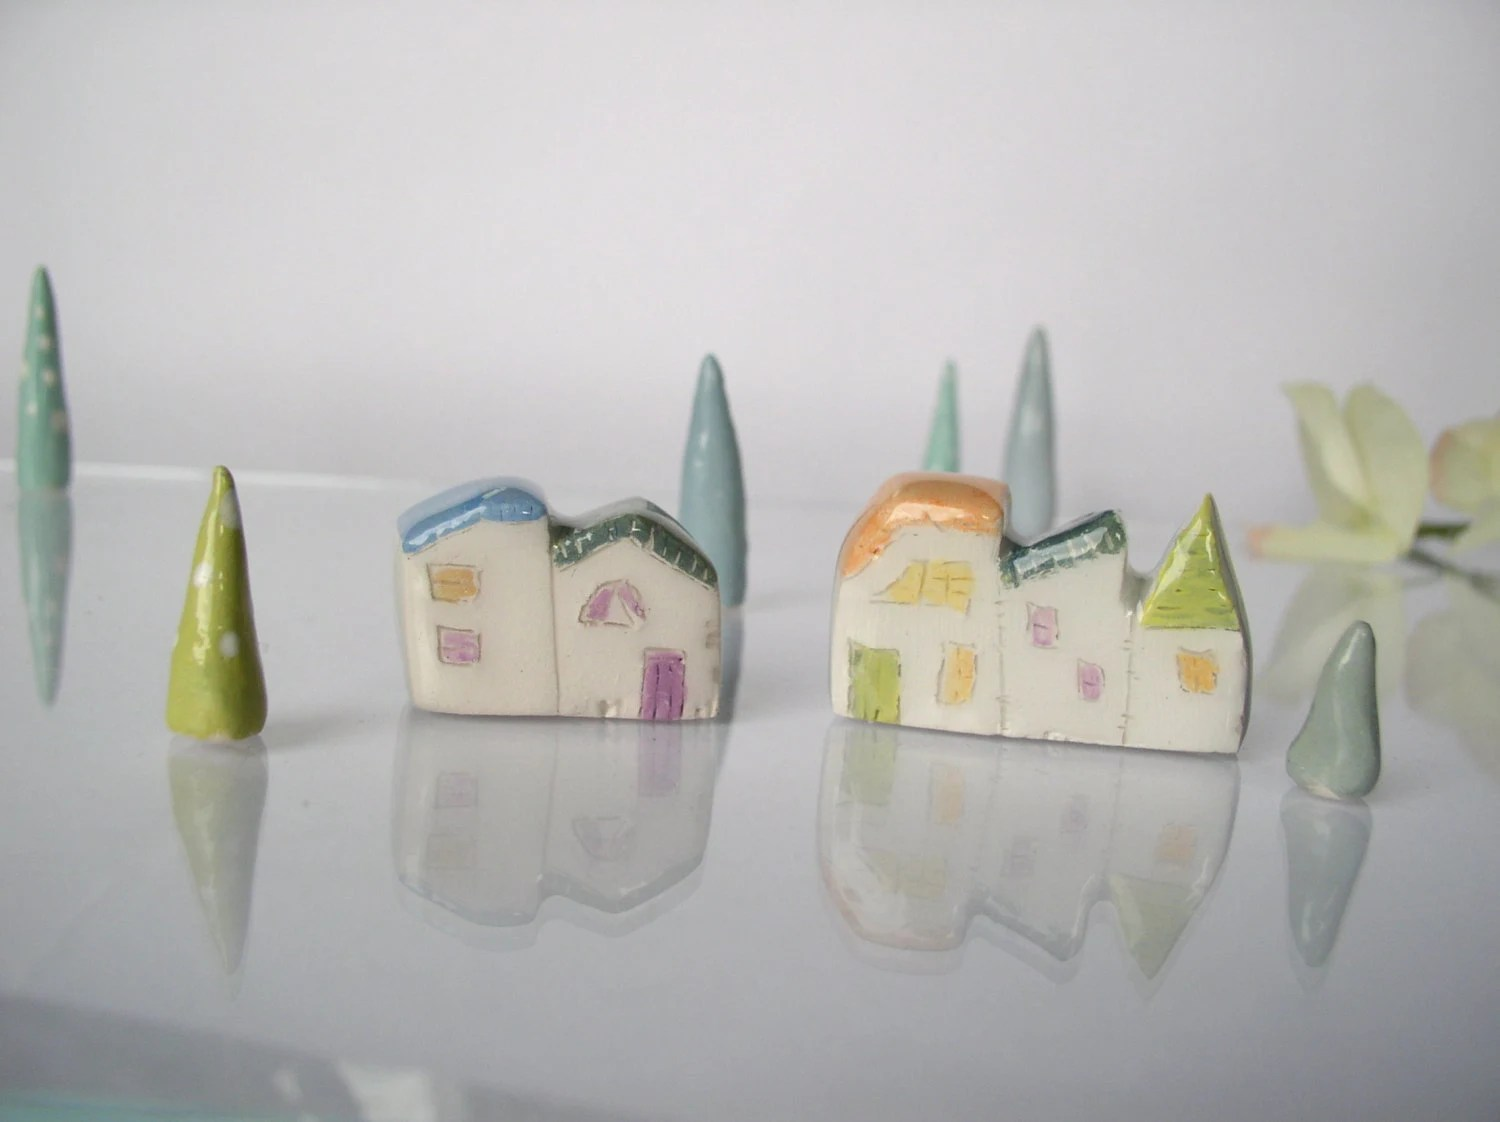 My little Village -Set of Handmade white clay houses with colored roofs, doors and windows And 3 Trees - VitezArtGlassDesign